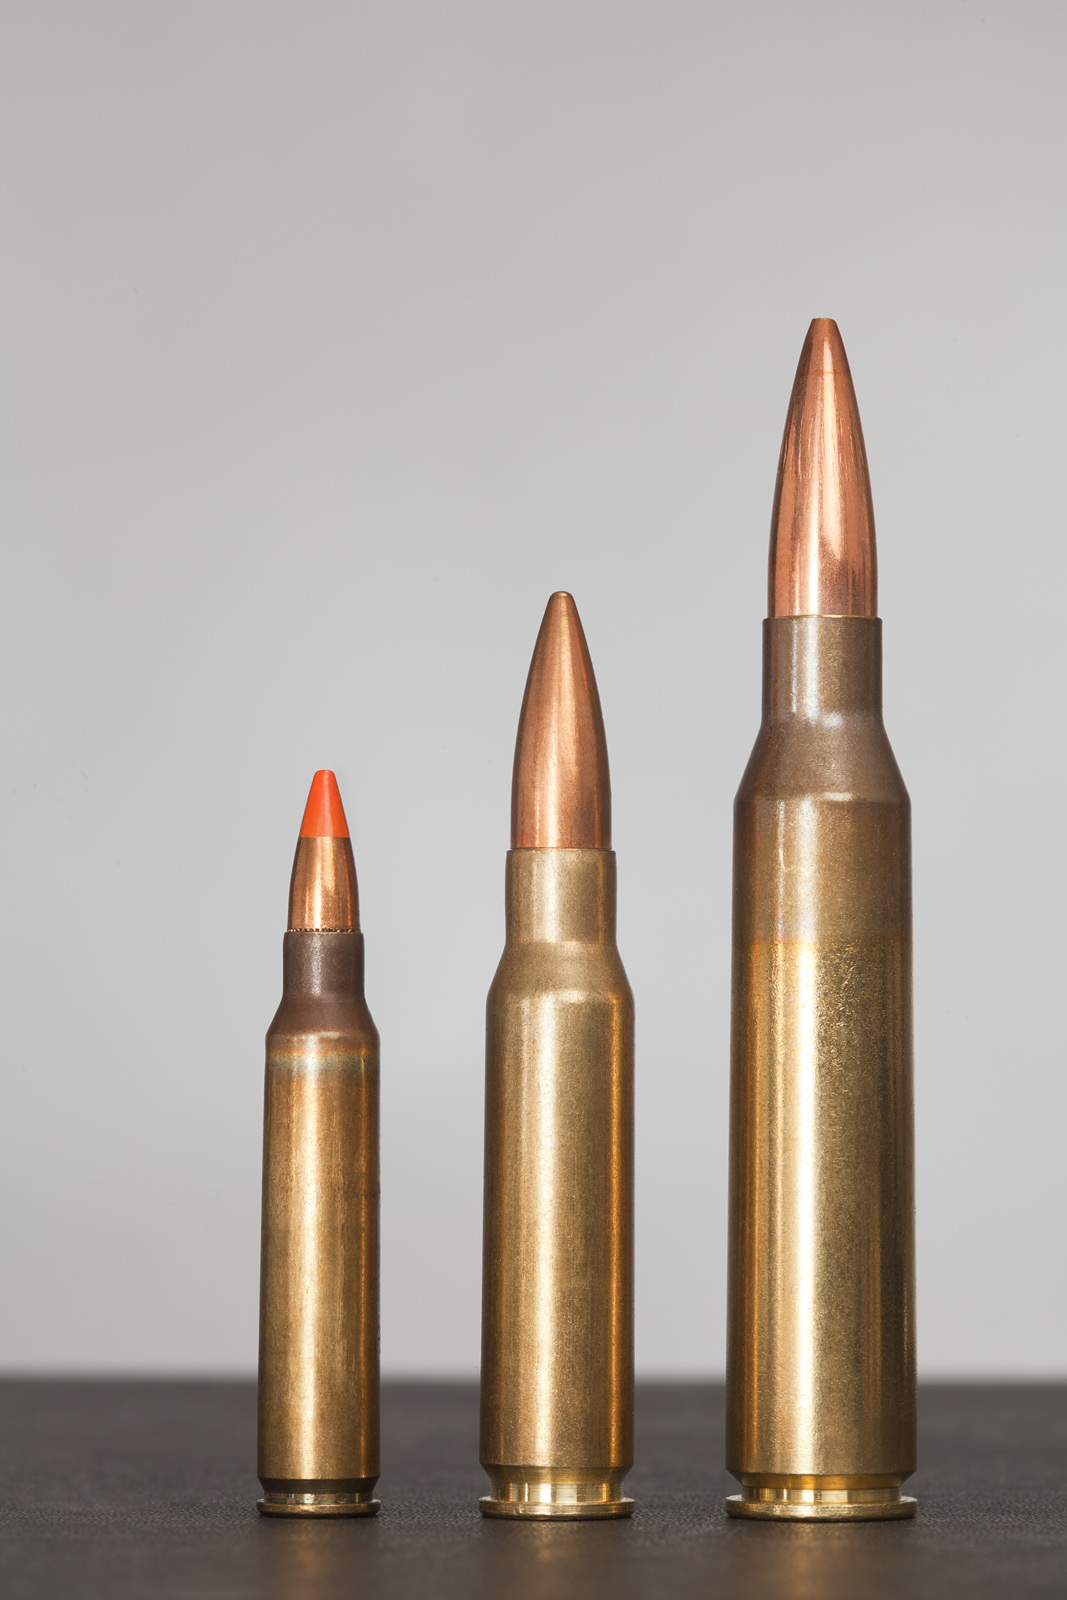 308 vs 223 Ammo Cost http://olegvolk.net/gallery/technology/arms/ammo/223-308-338LM_9991.jpg.html?g2_imageViewsIndex=1